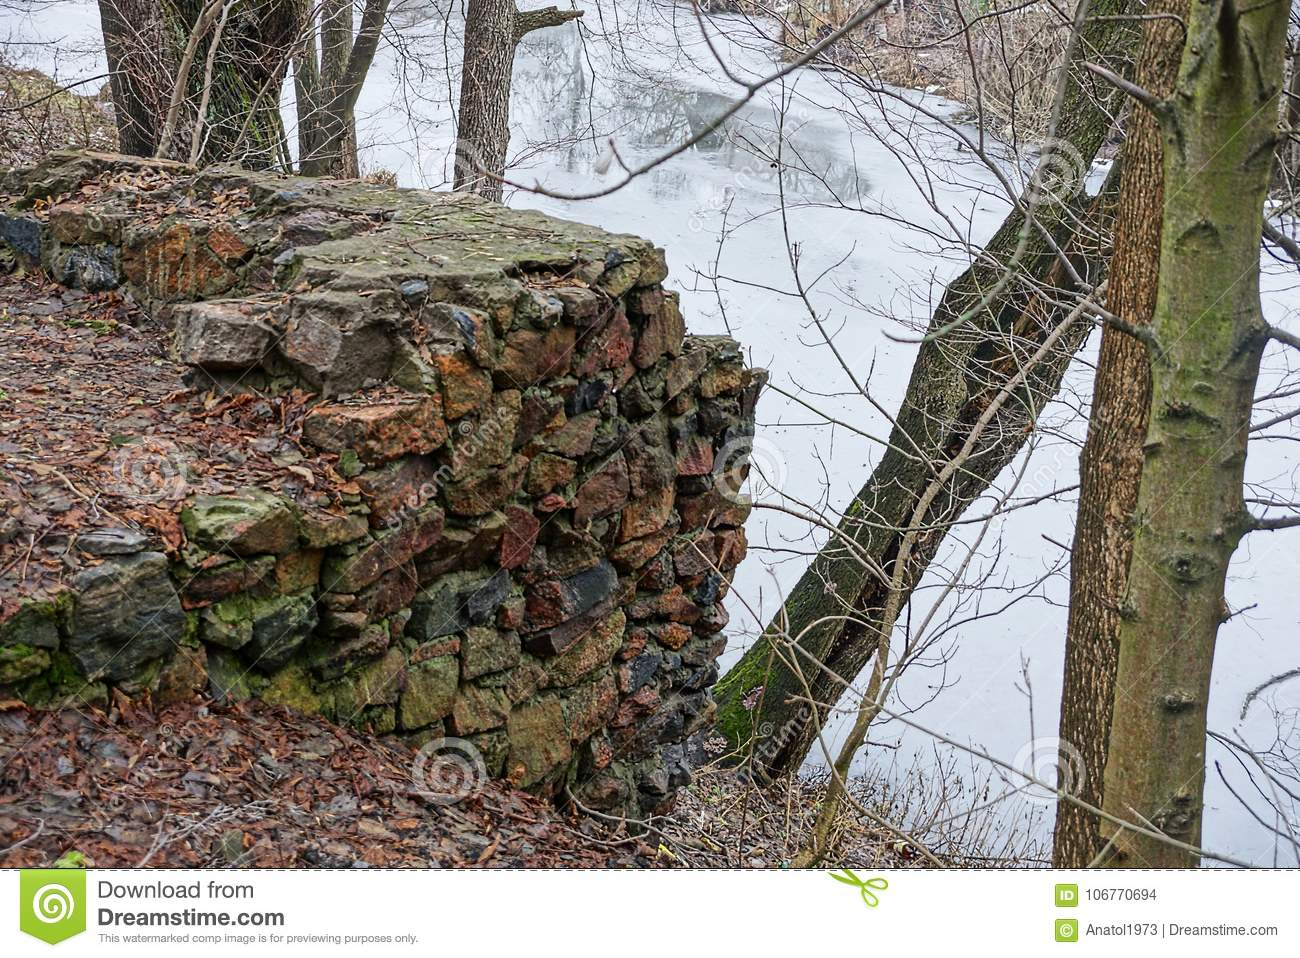 Stone Foundation Of A Ruined Old House On The River Bank Stock Photo Image Of Destroyed Retro 106770694